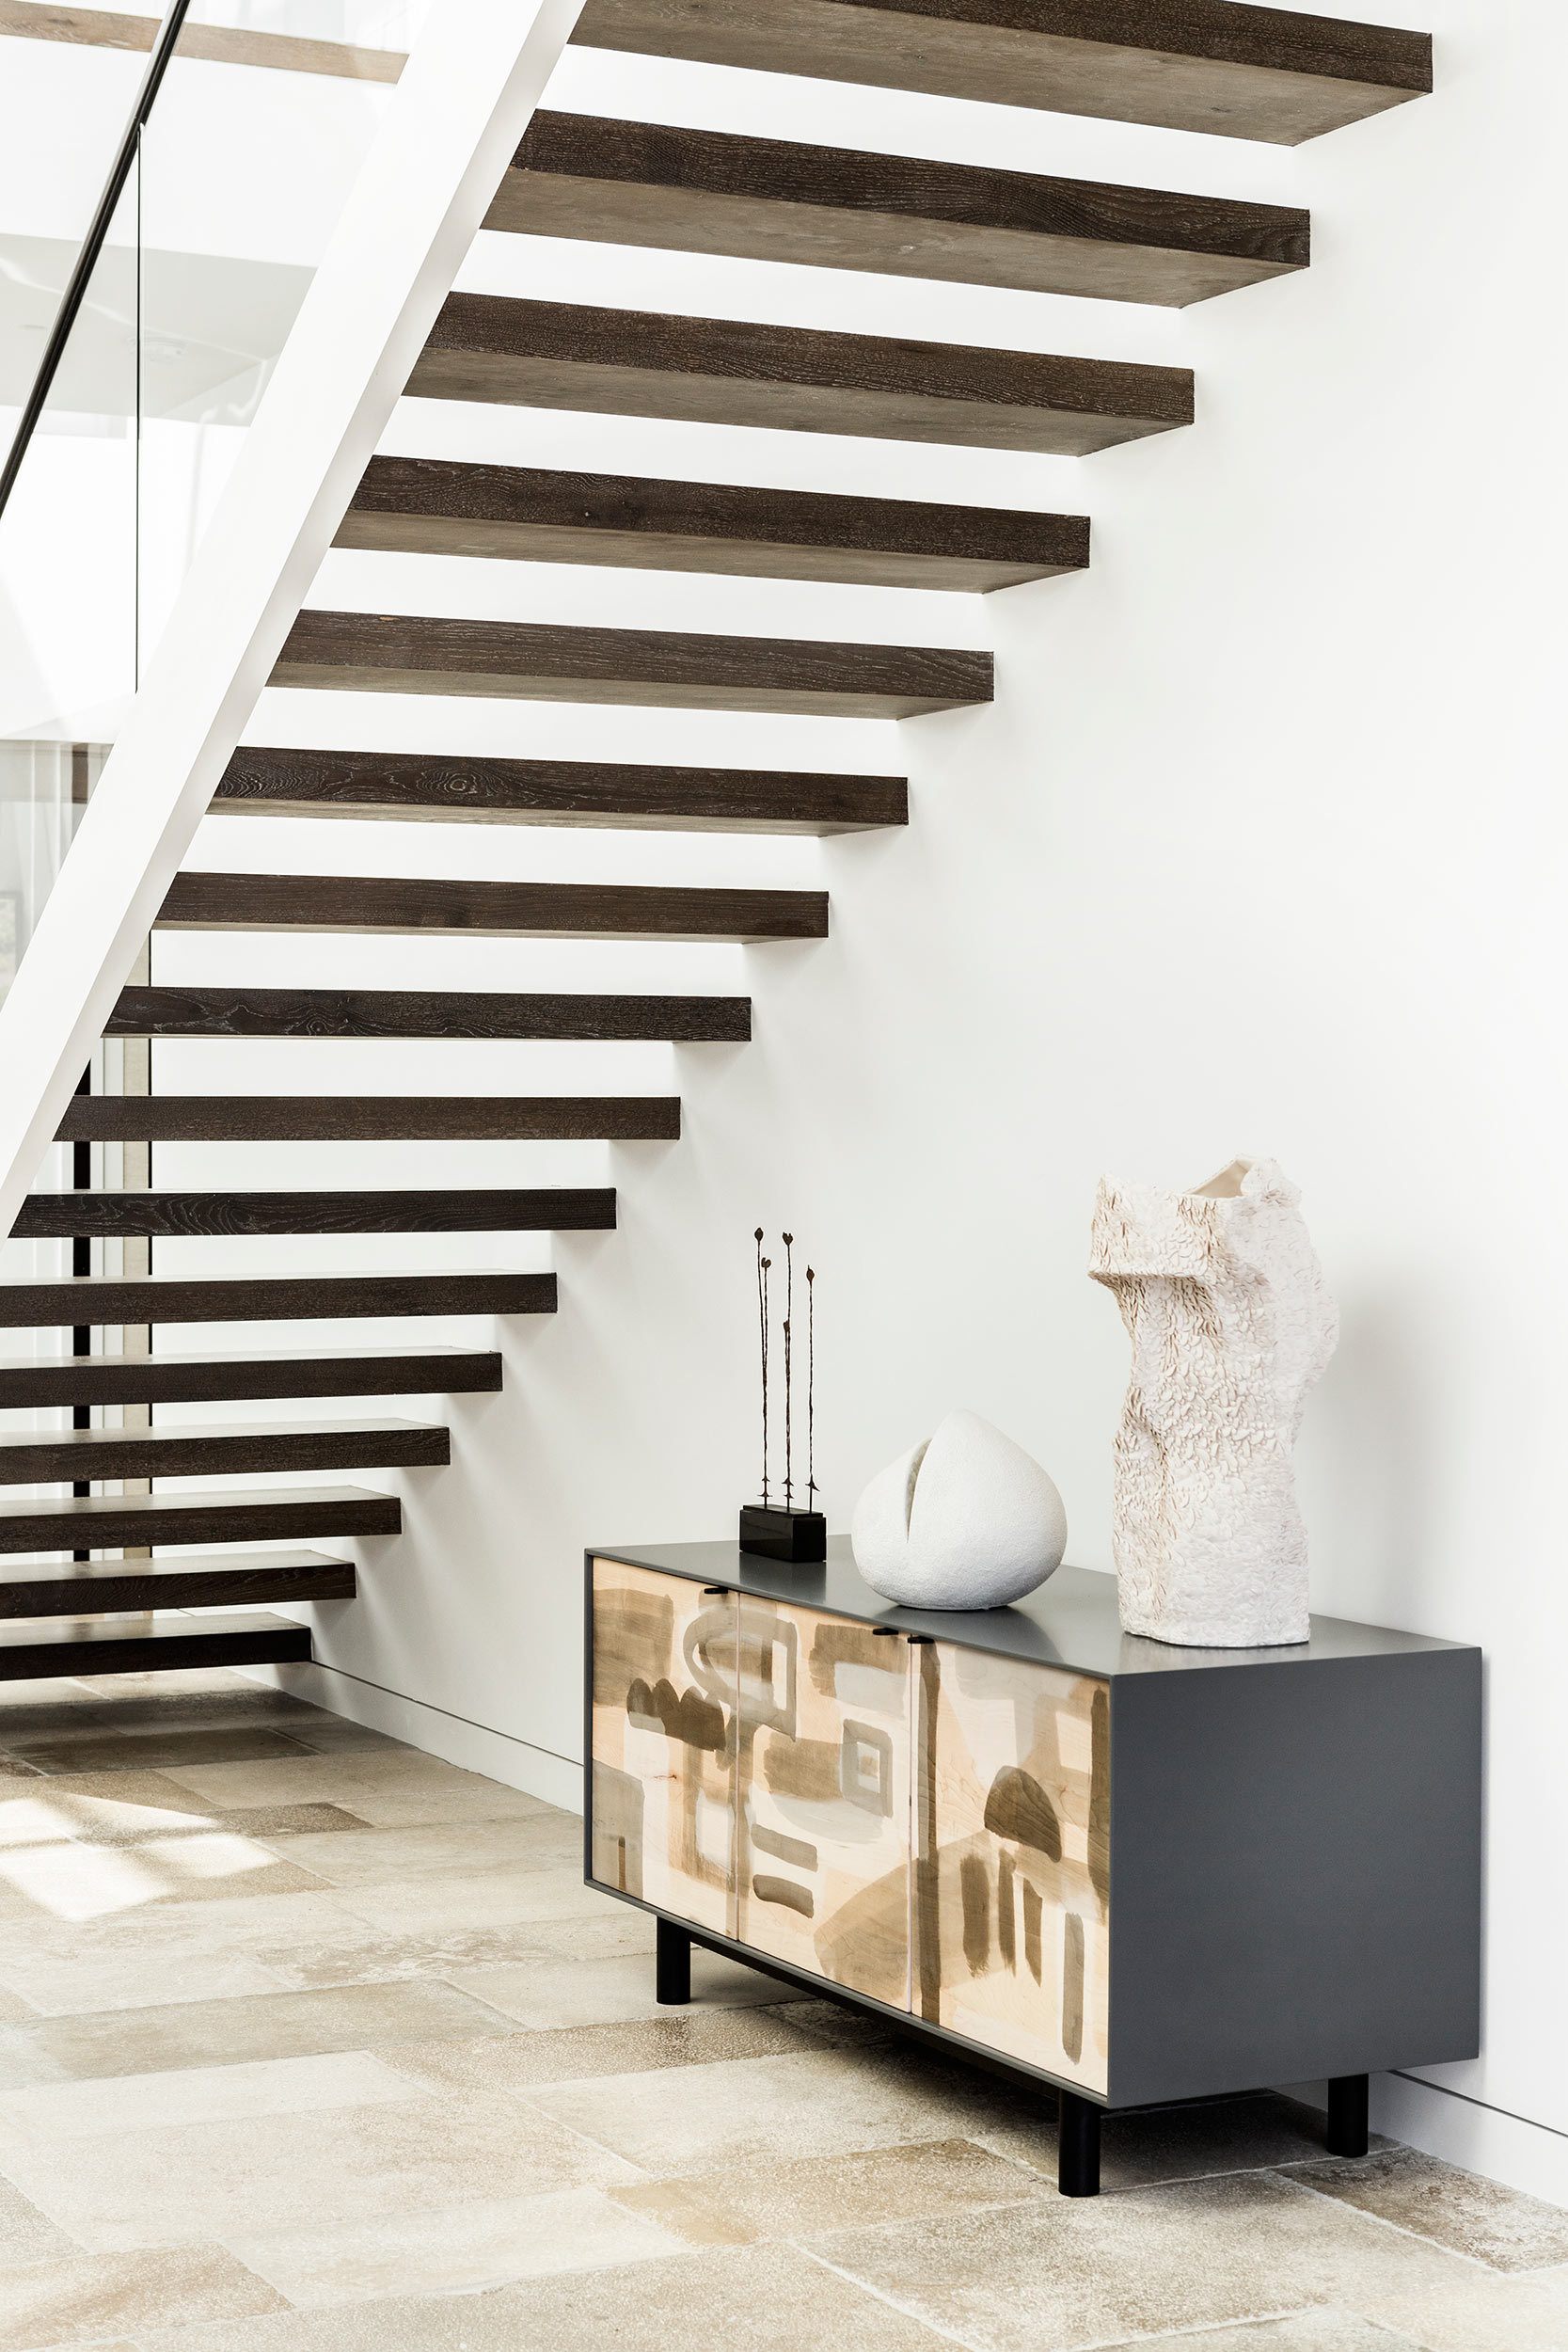 An open wood stair rises in the entry atrium